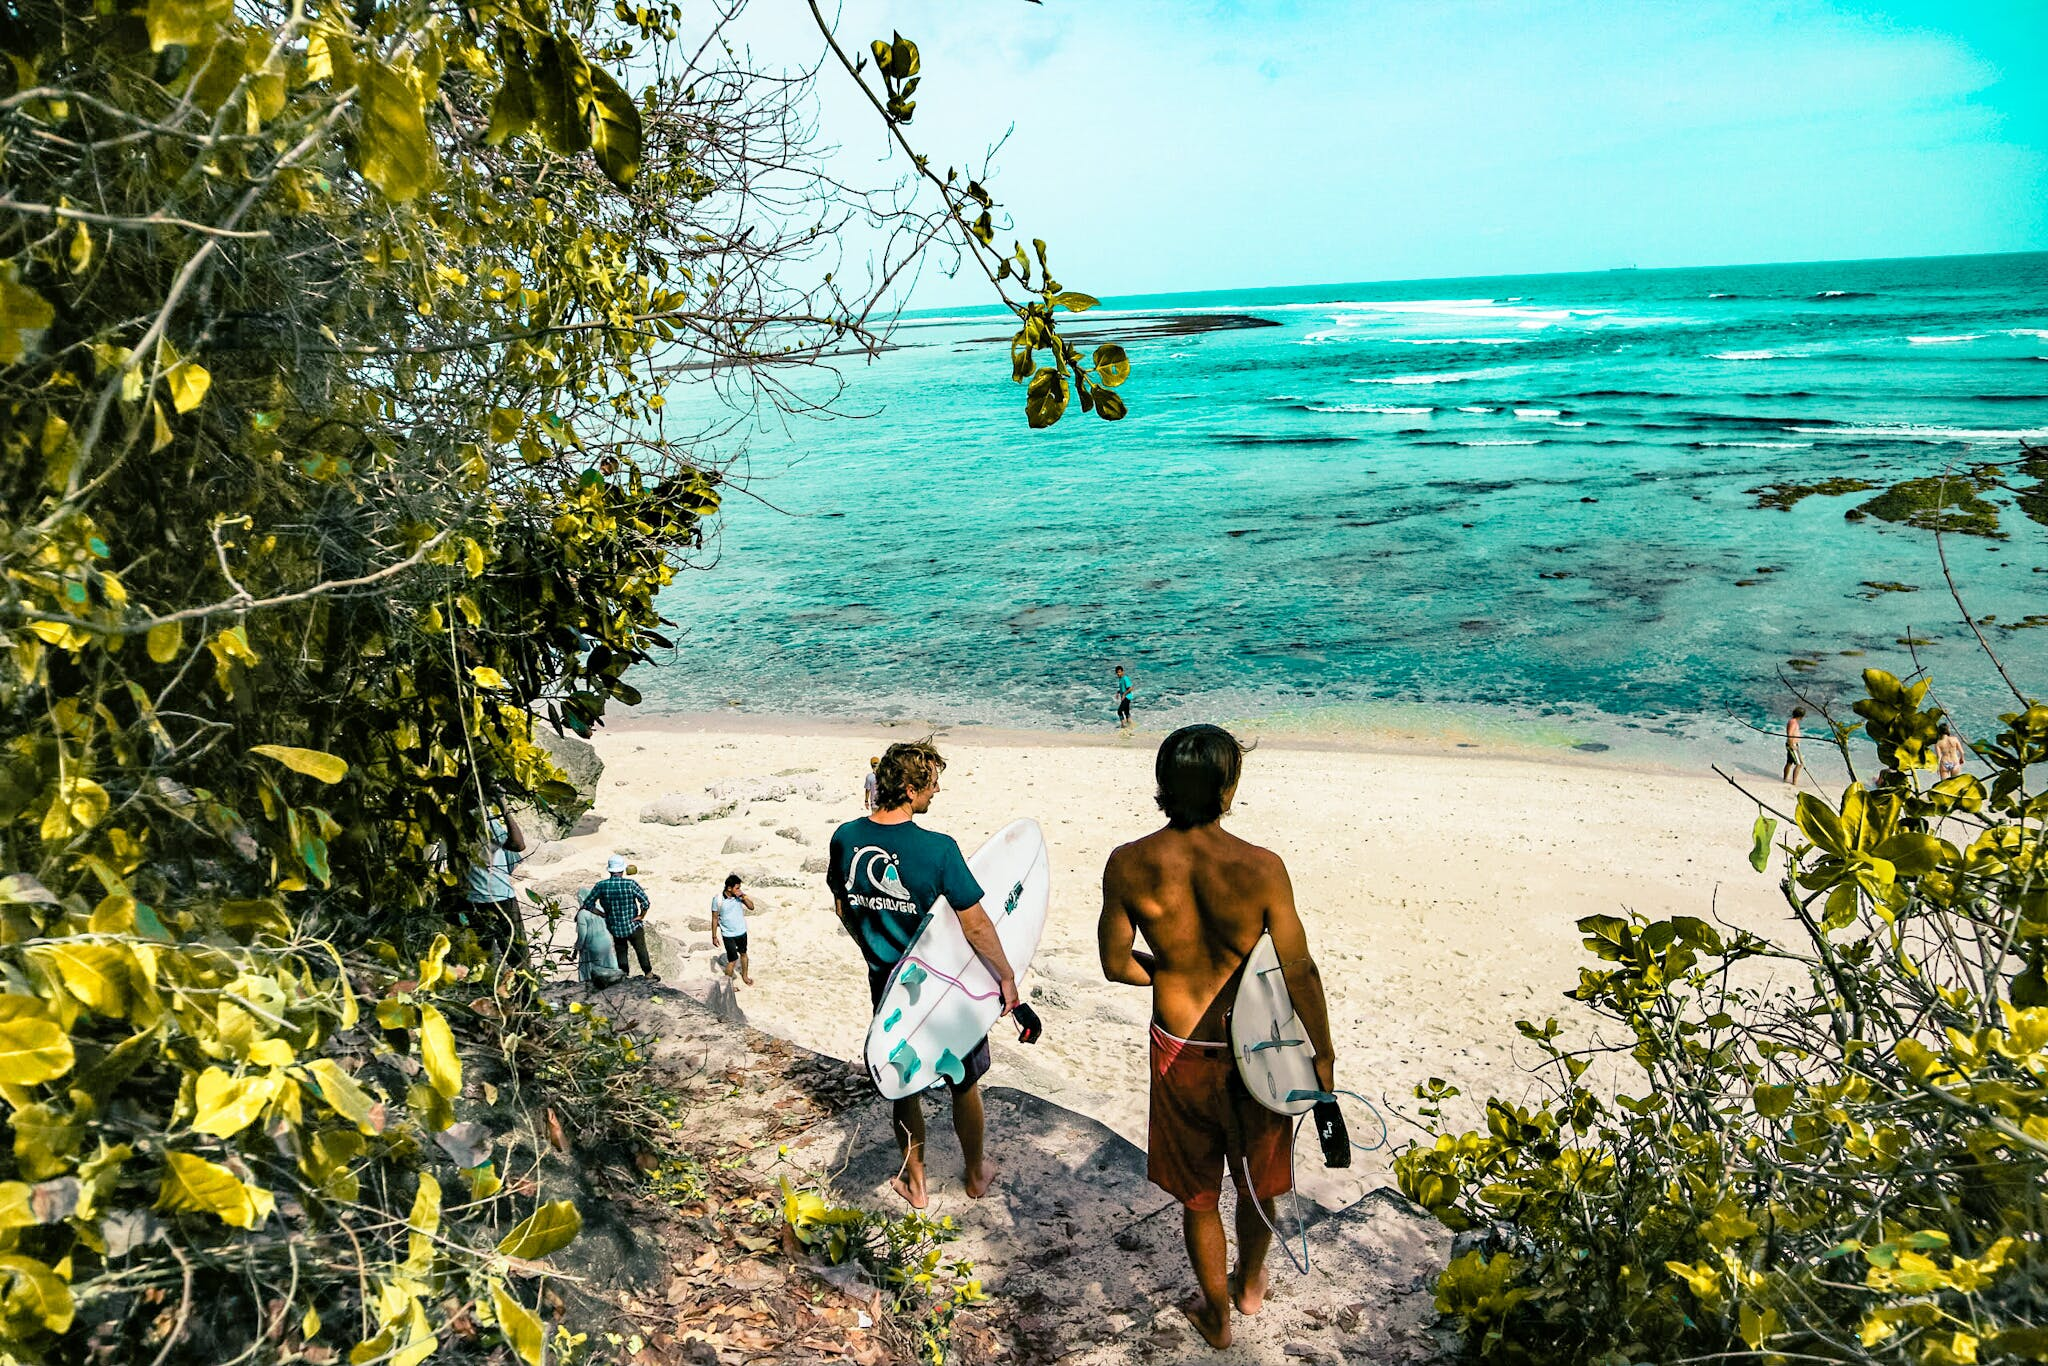 Two Man Holding Surfboards Going to Beach